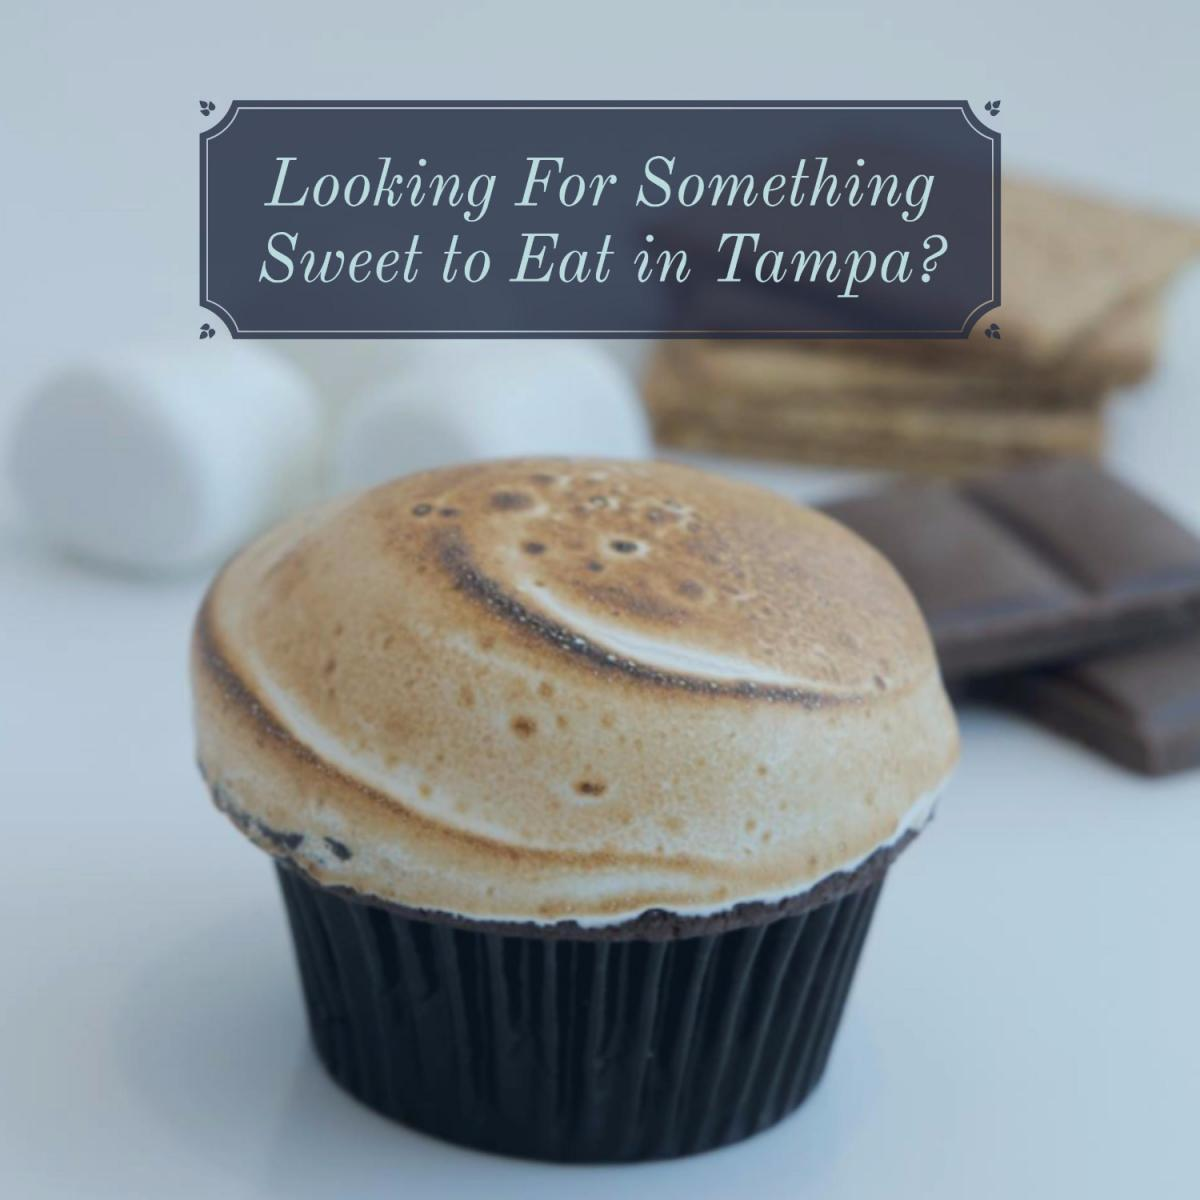 Looking For Something Sweet to Eat in Tampa?